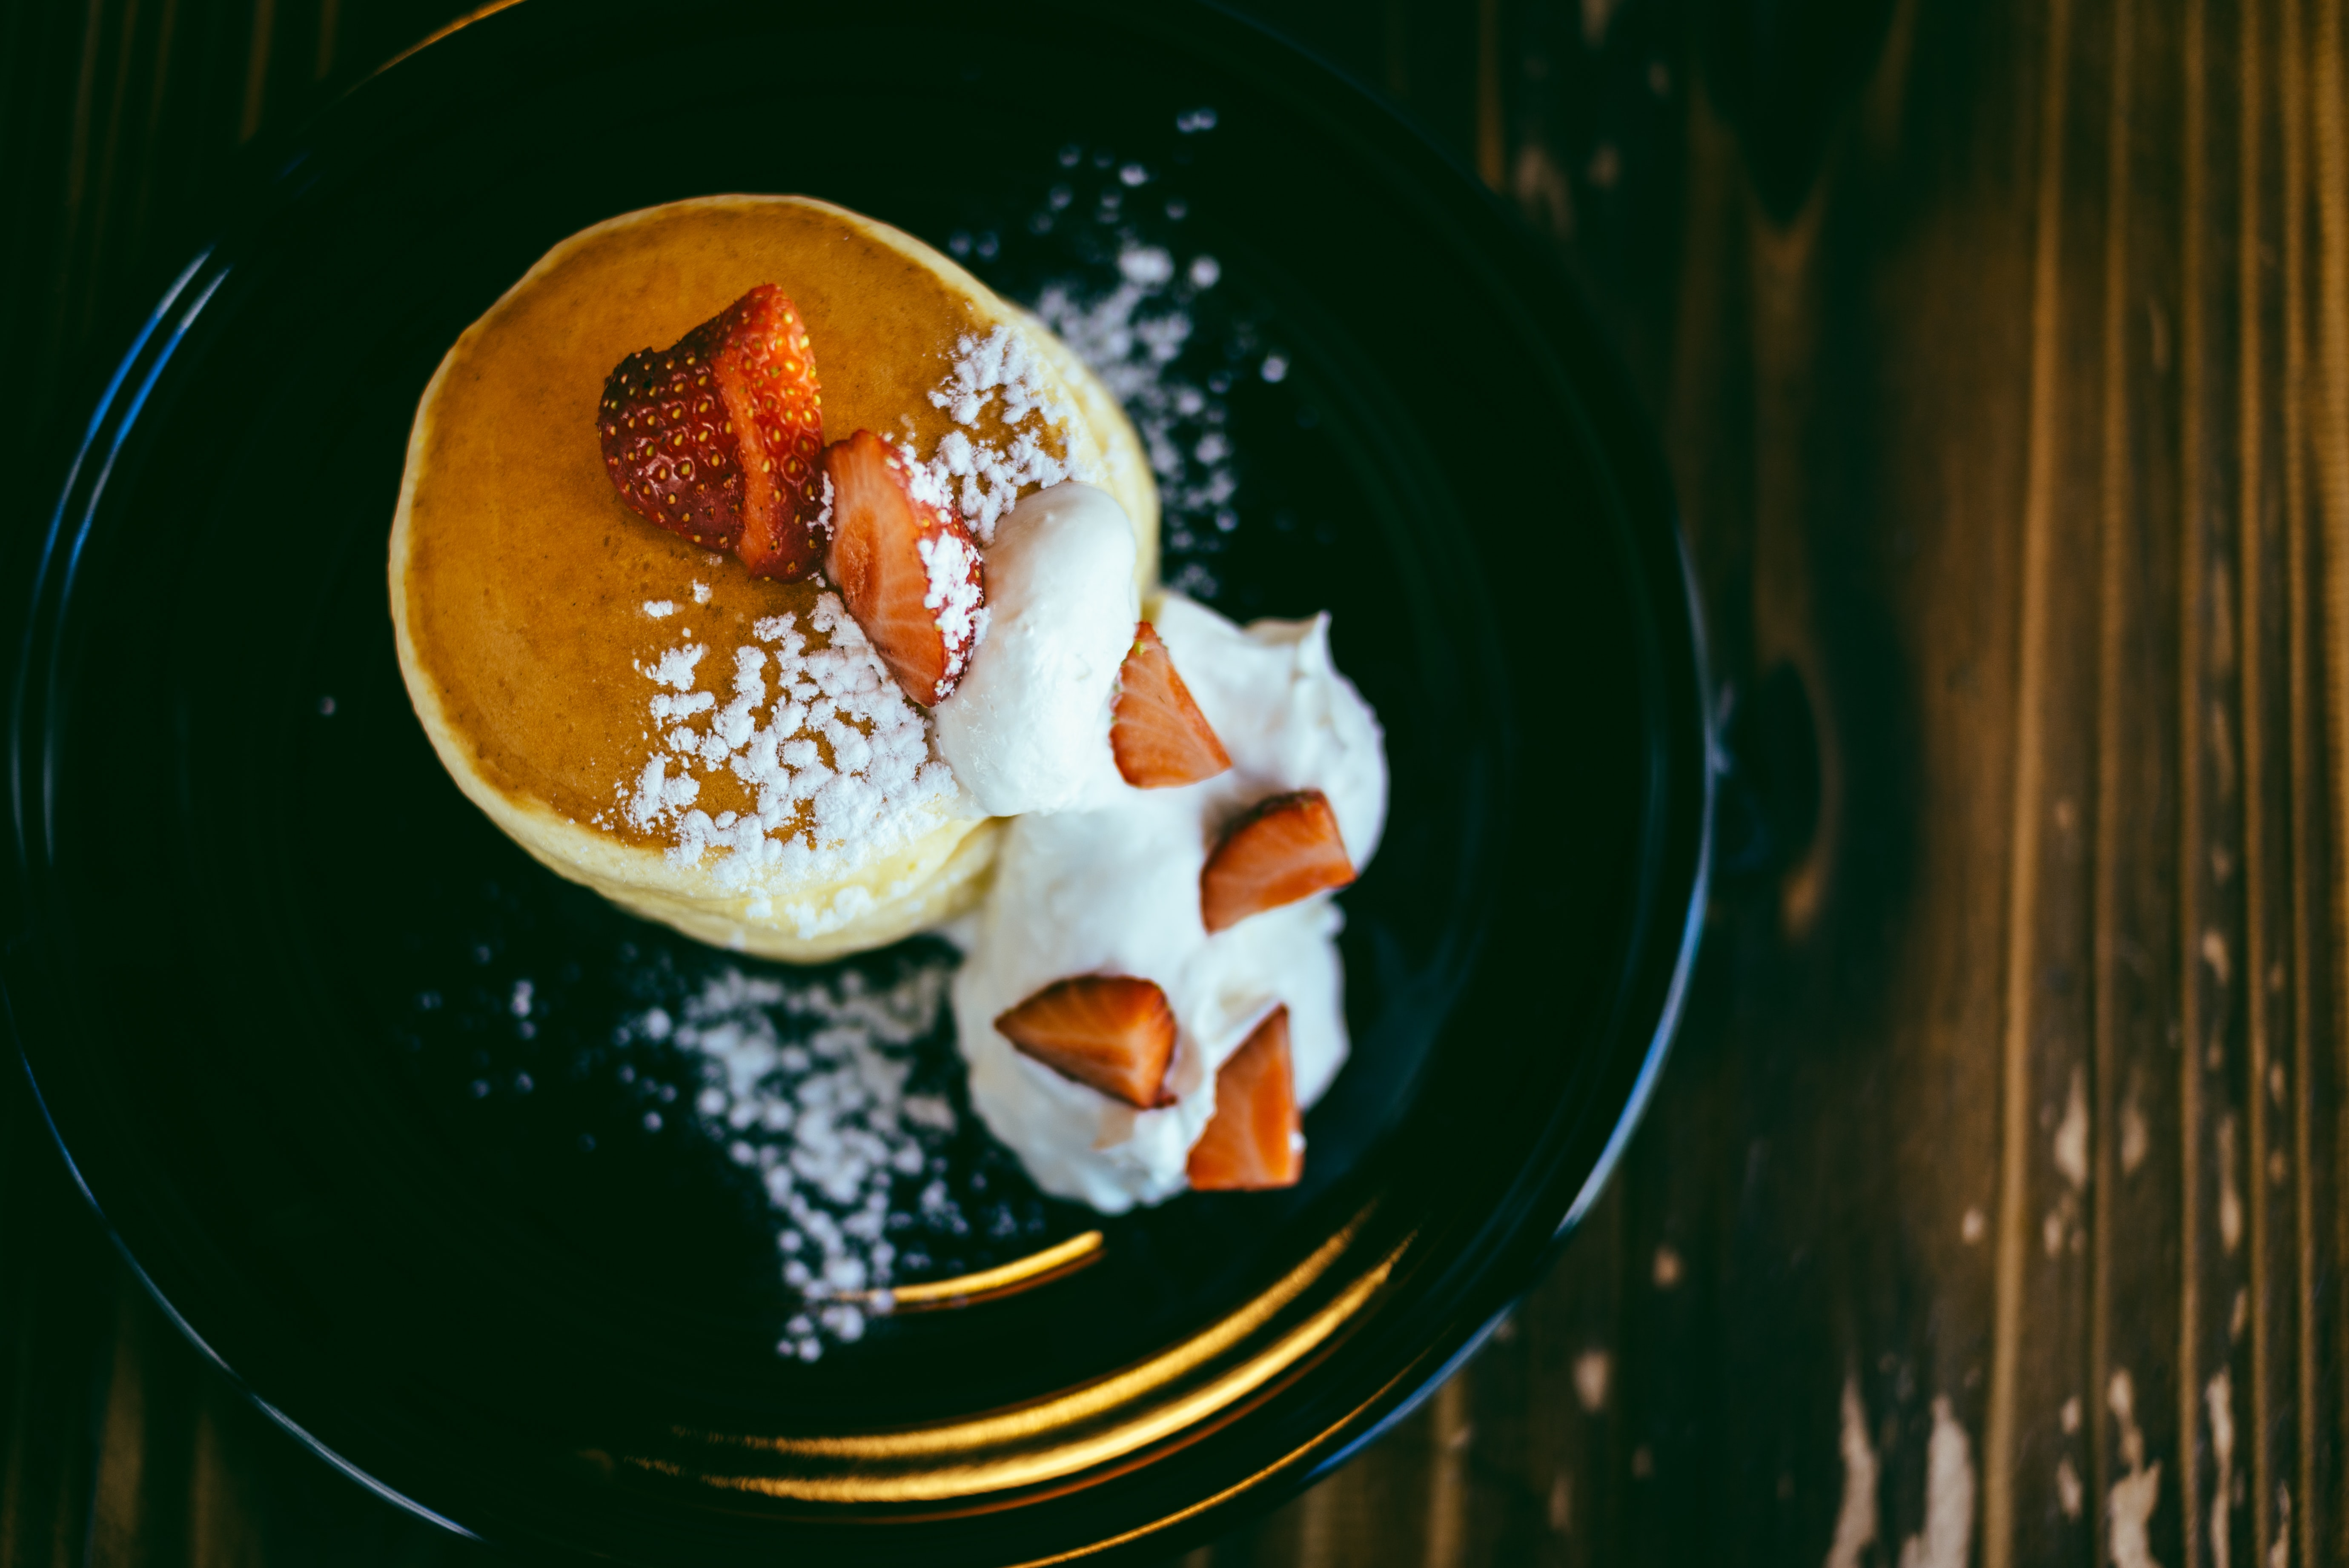 strawberry topped pancake with whip cream on round black ceramic plate